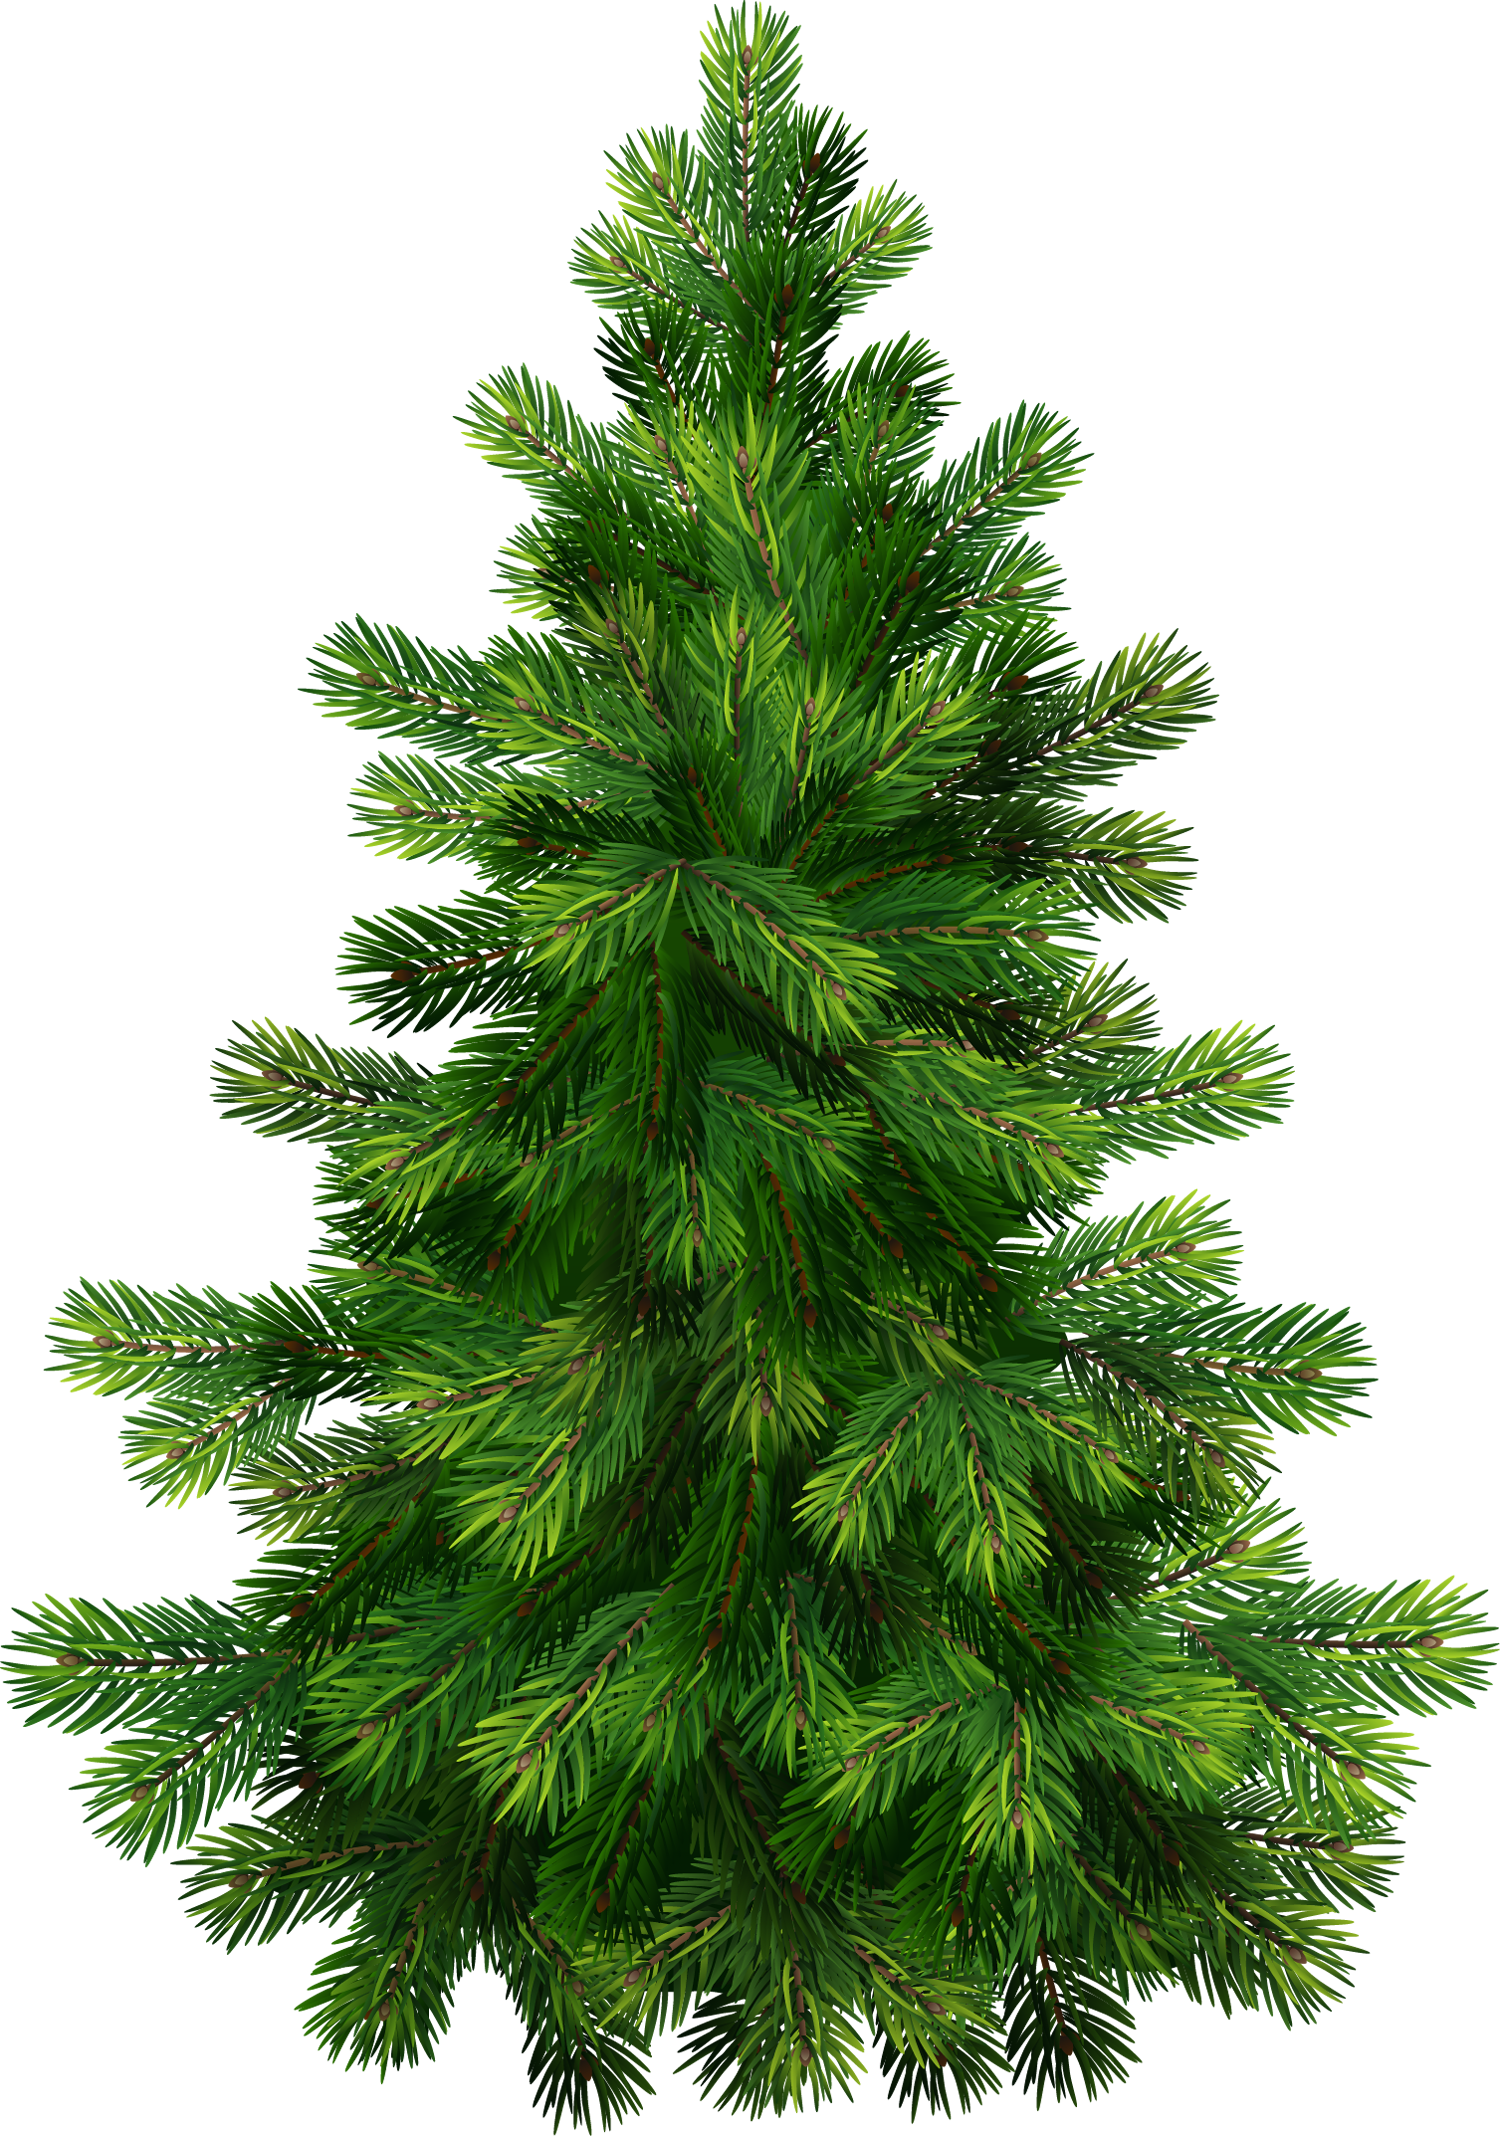 Pine clipart. Transparent tree png gallery